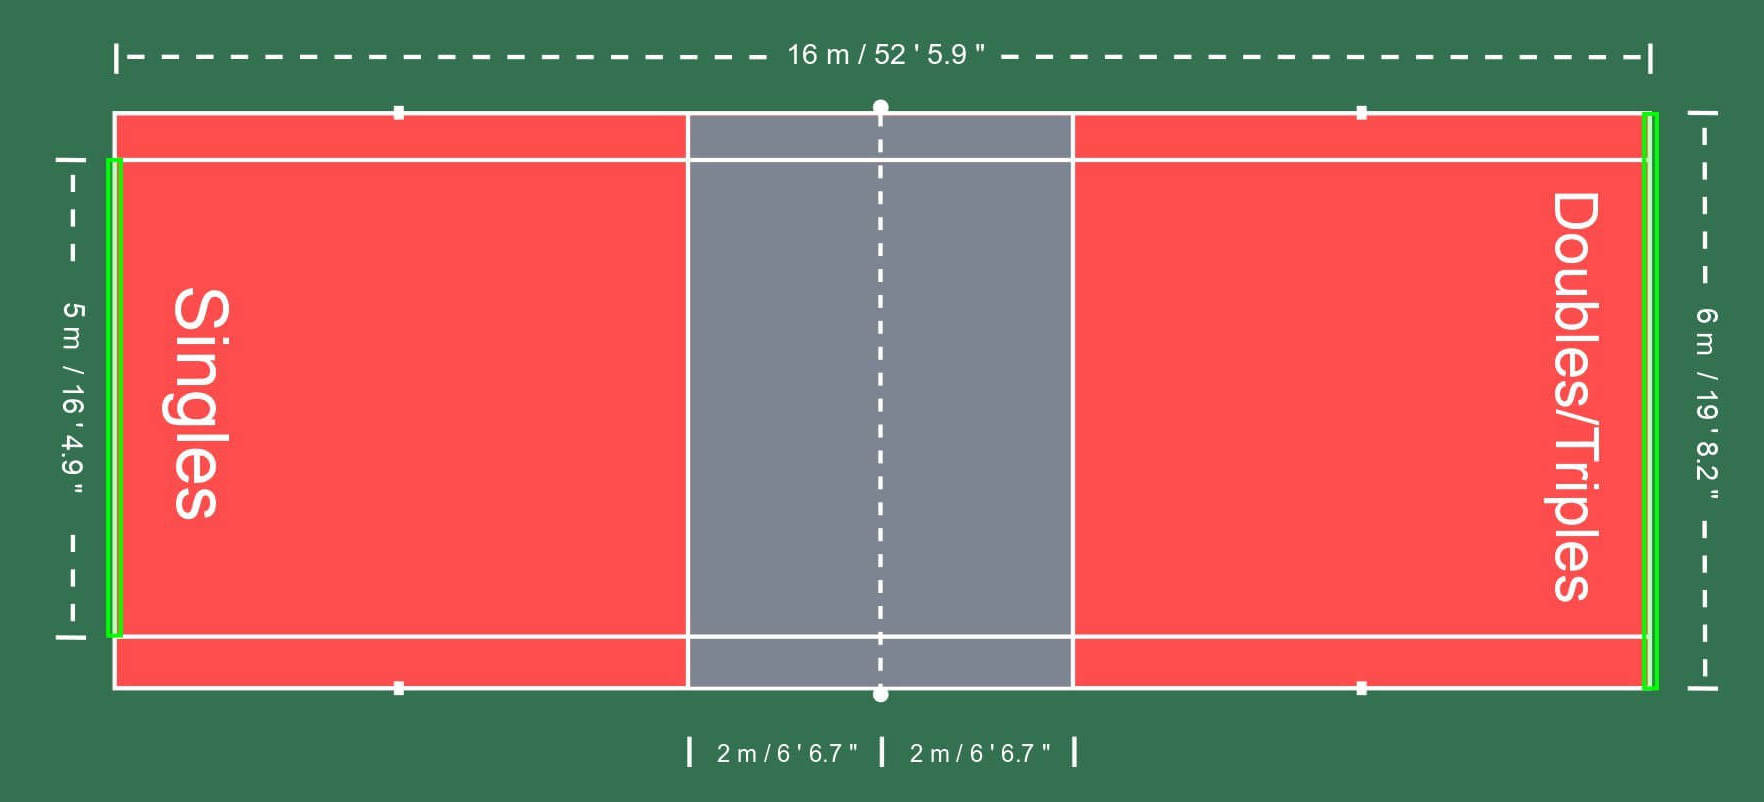 How Do I Set Up an AirBadminton Court?